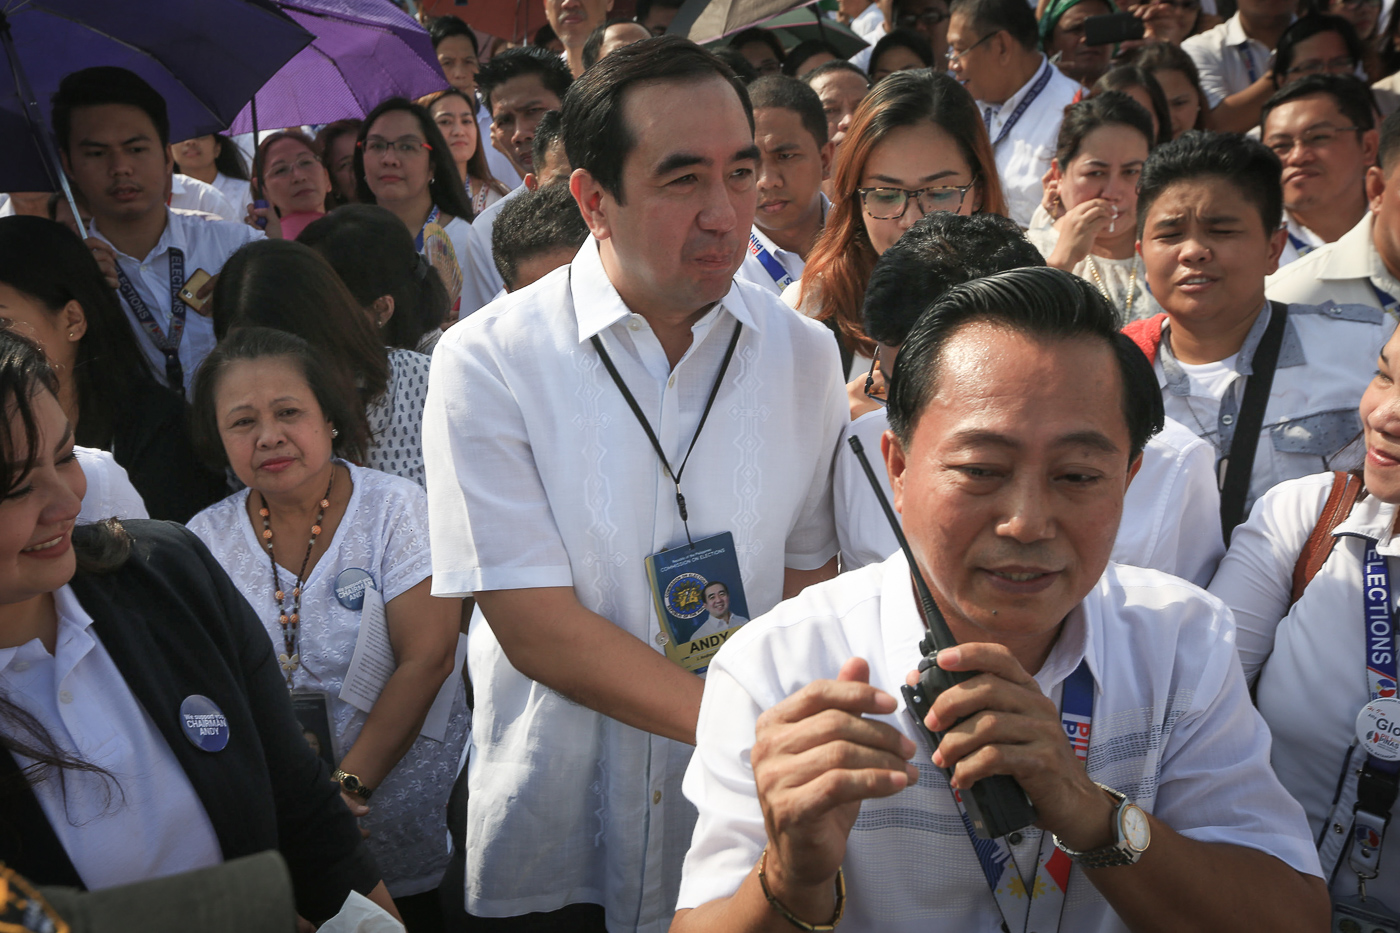 IMPEACHED. Comelec chairman Andres Bautista is impeached on the same day he announces his resignation effective December 31, 2017. File photo by Ben Nabong/Rappler